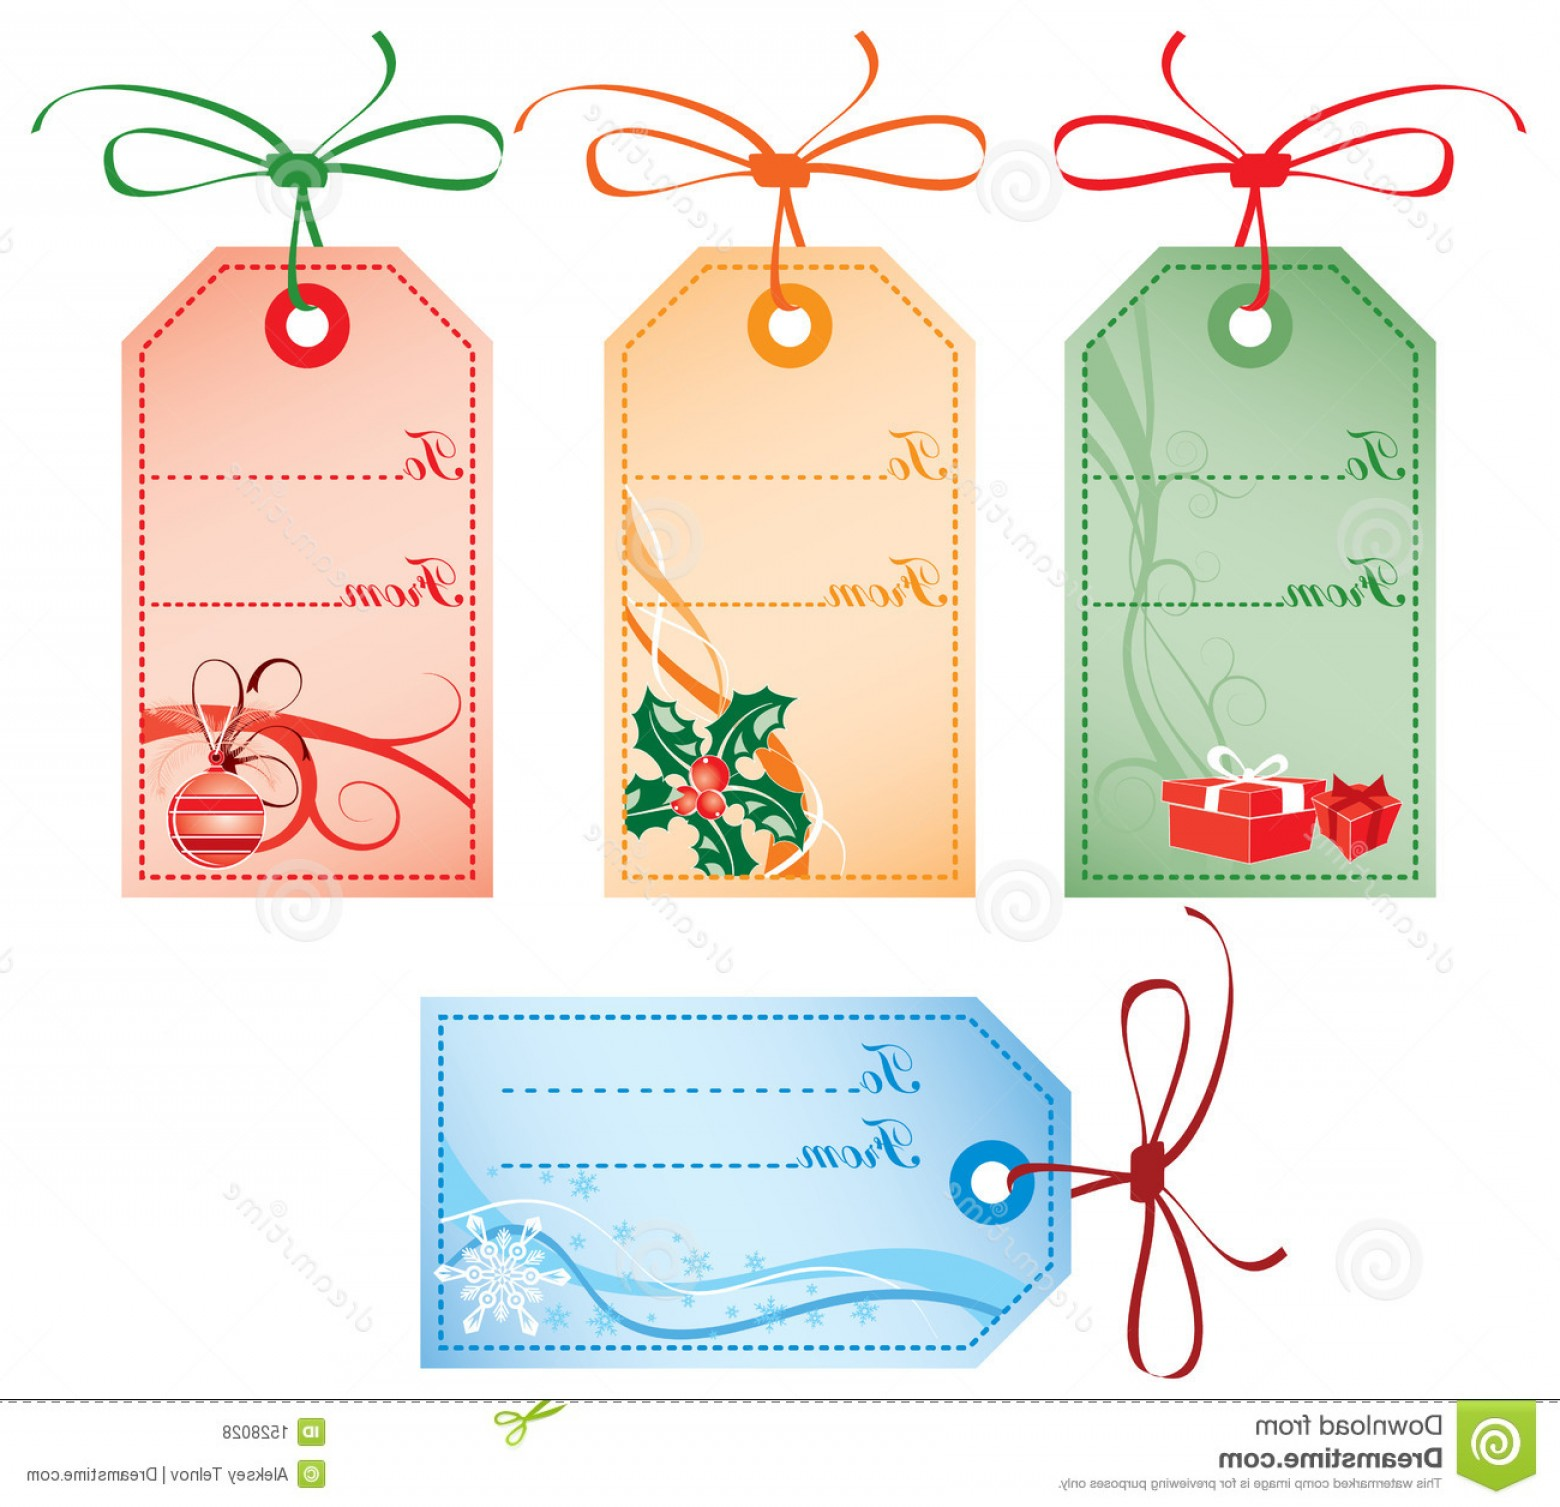 Gift Tags Vector Art: Royalty Free Stock Photos Christmas Gift Tags Vector Image